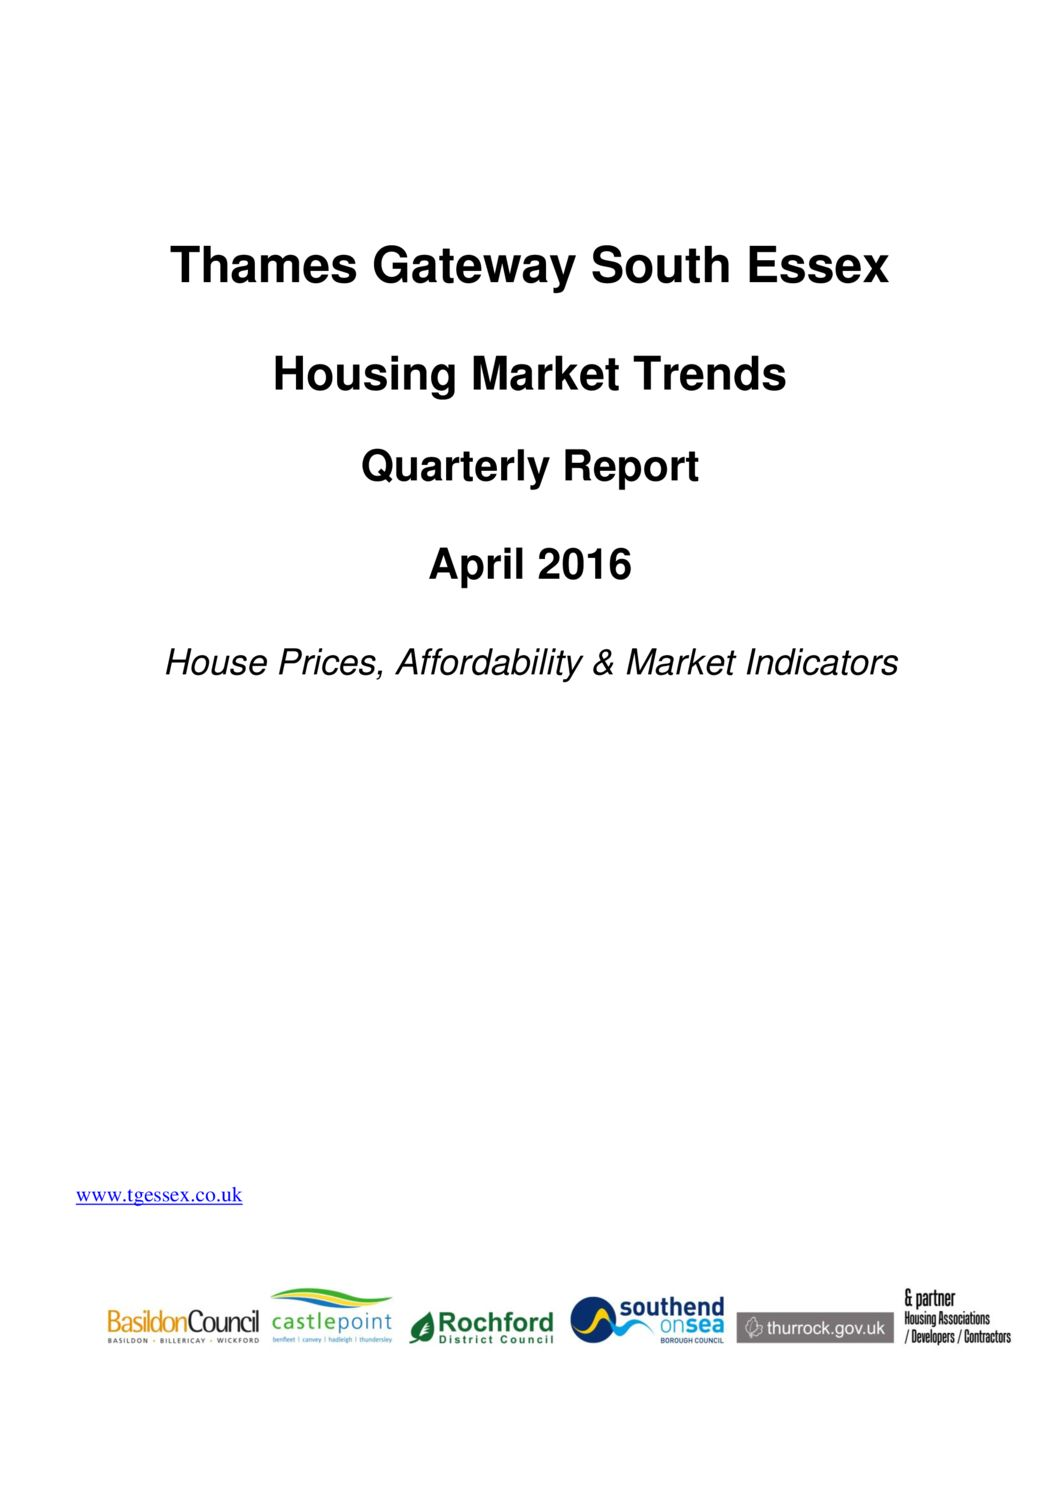 SE Housing Market Trends Quarterly Report April 2016